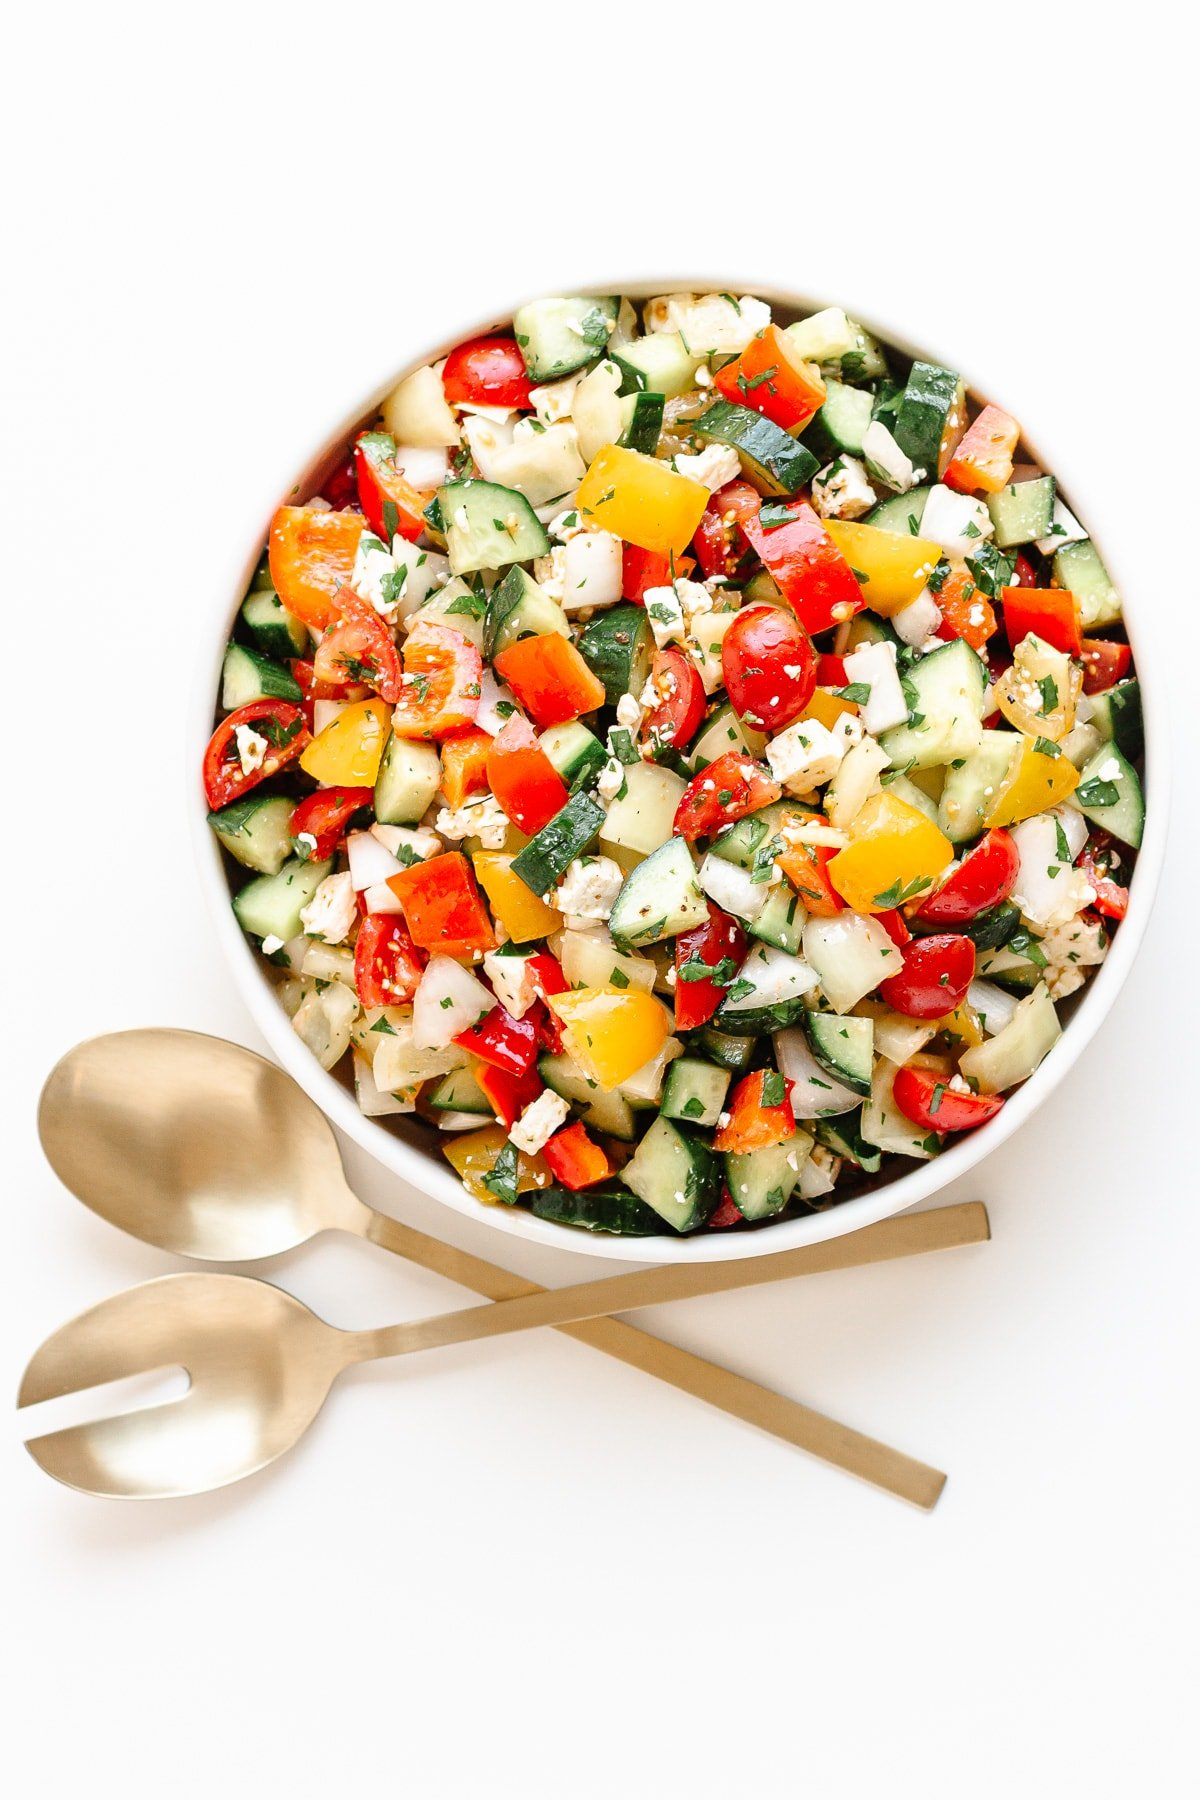 Bowl of summer chopped salad and gold salad servers on a white background.